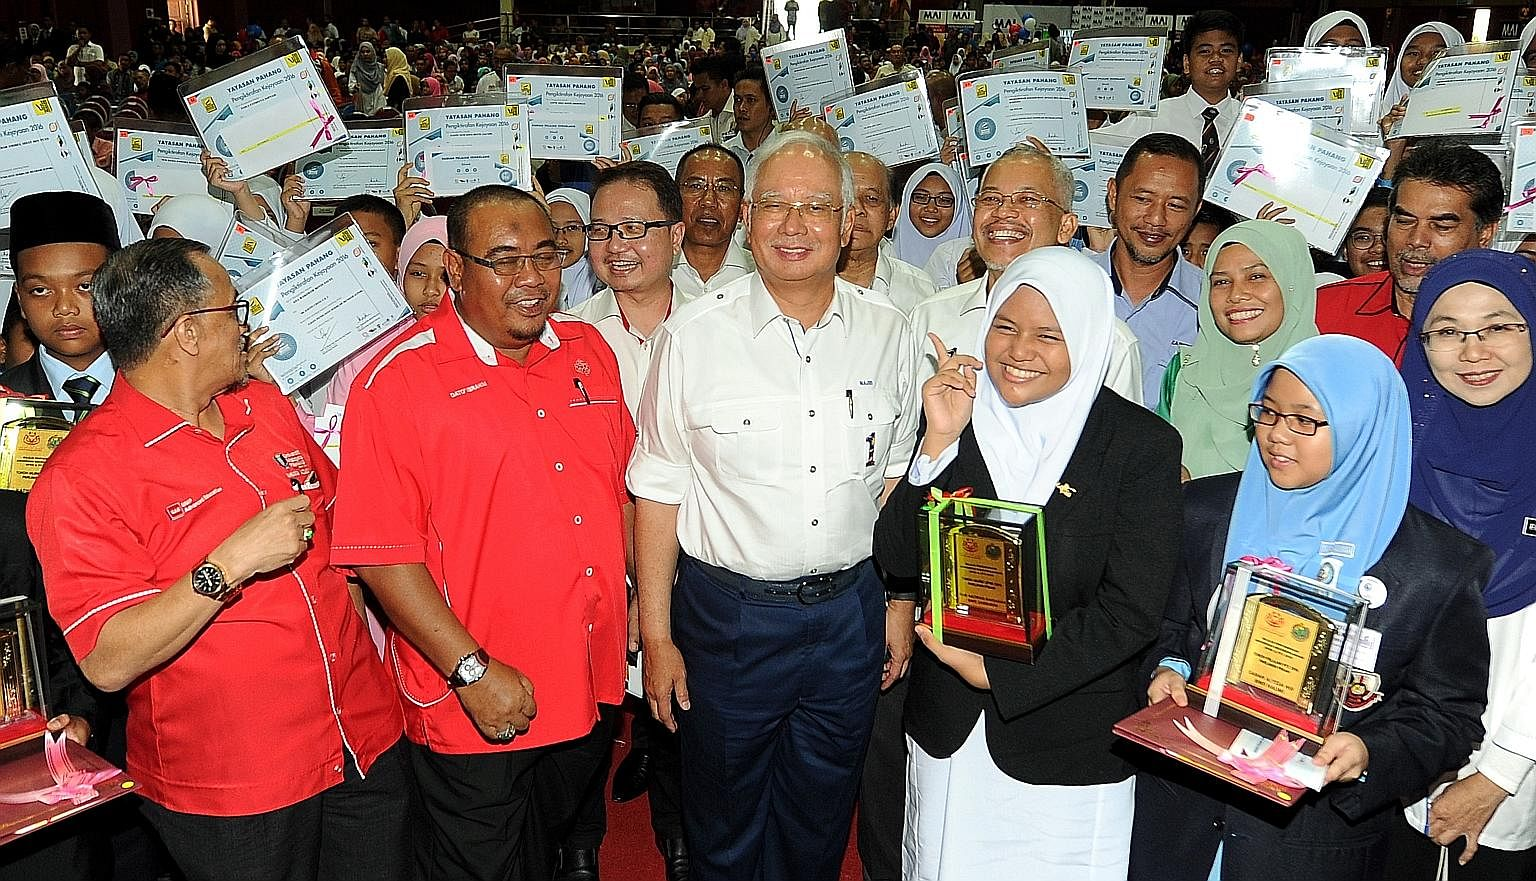 Mr Najib Razak (centre), seen here at an event in Pahang yesterday, criticised his predecessor Mahathir Mohamad for saying the opposition would continue giving cash handouts after criticising the aid programme earlier.